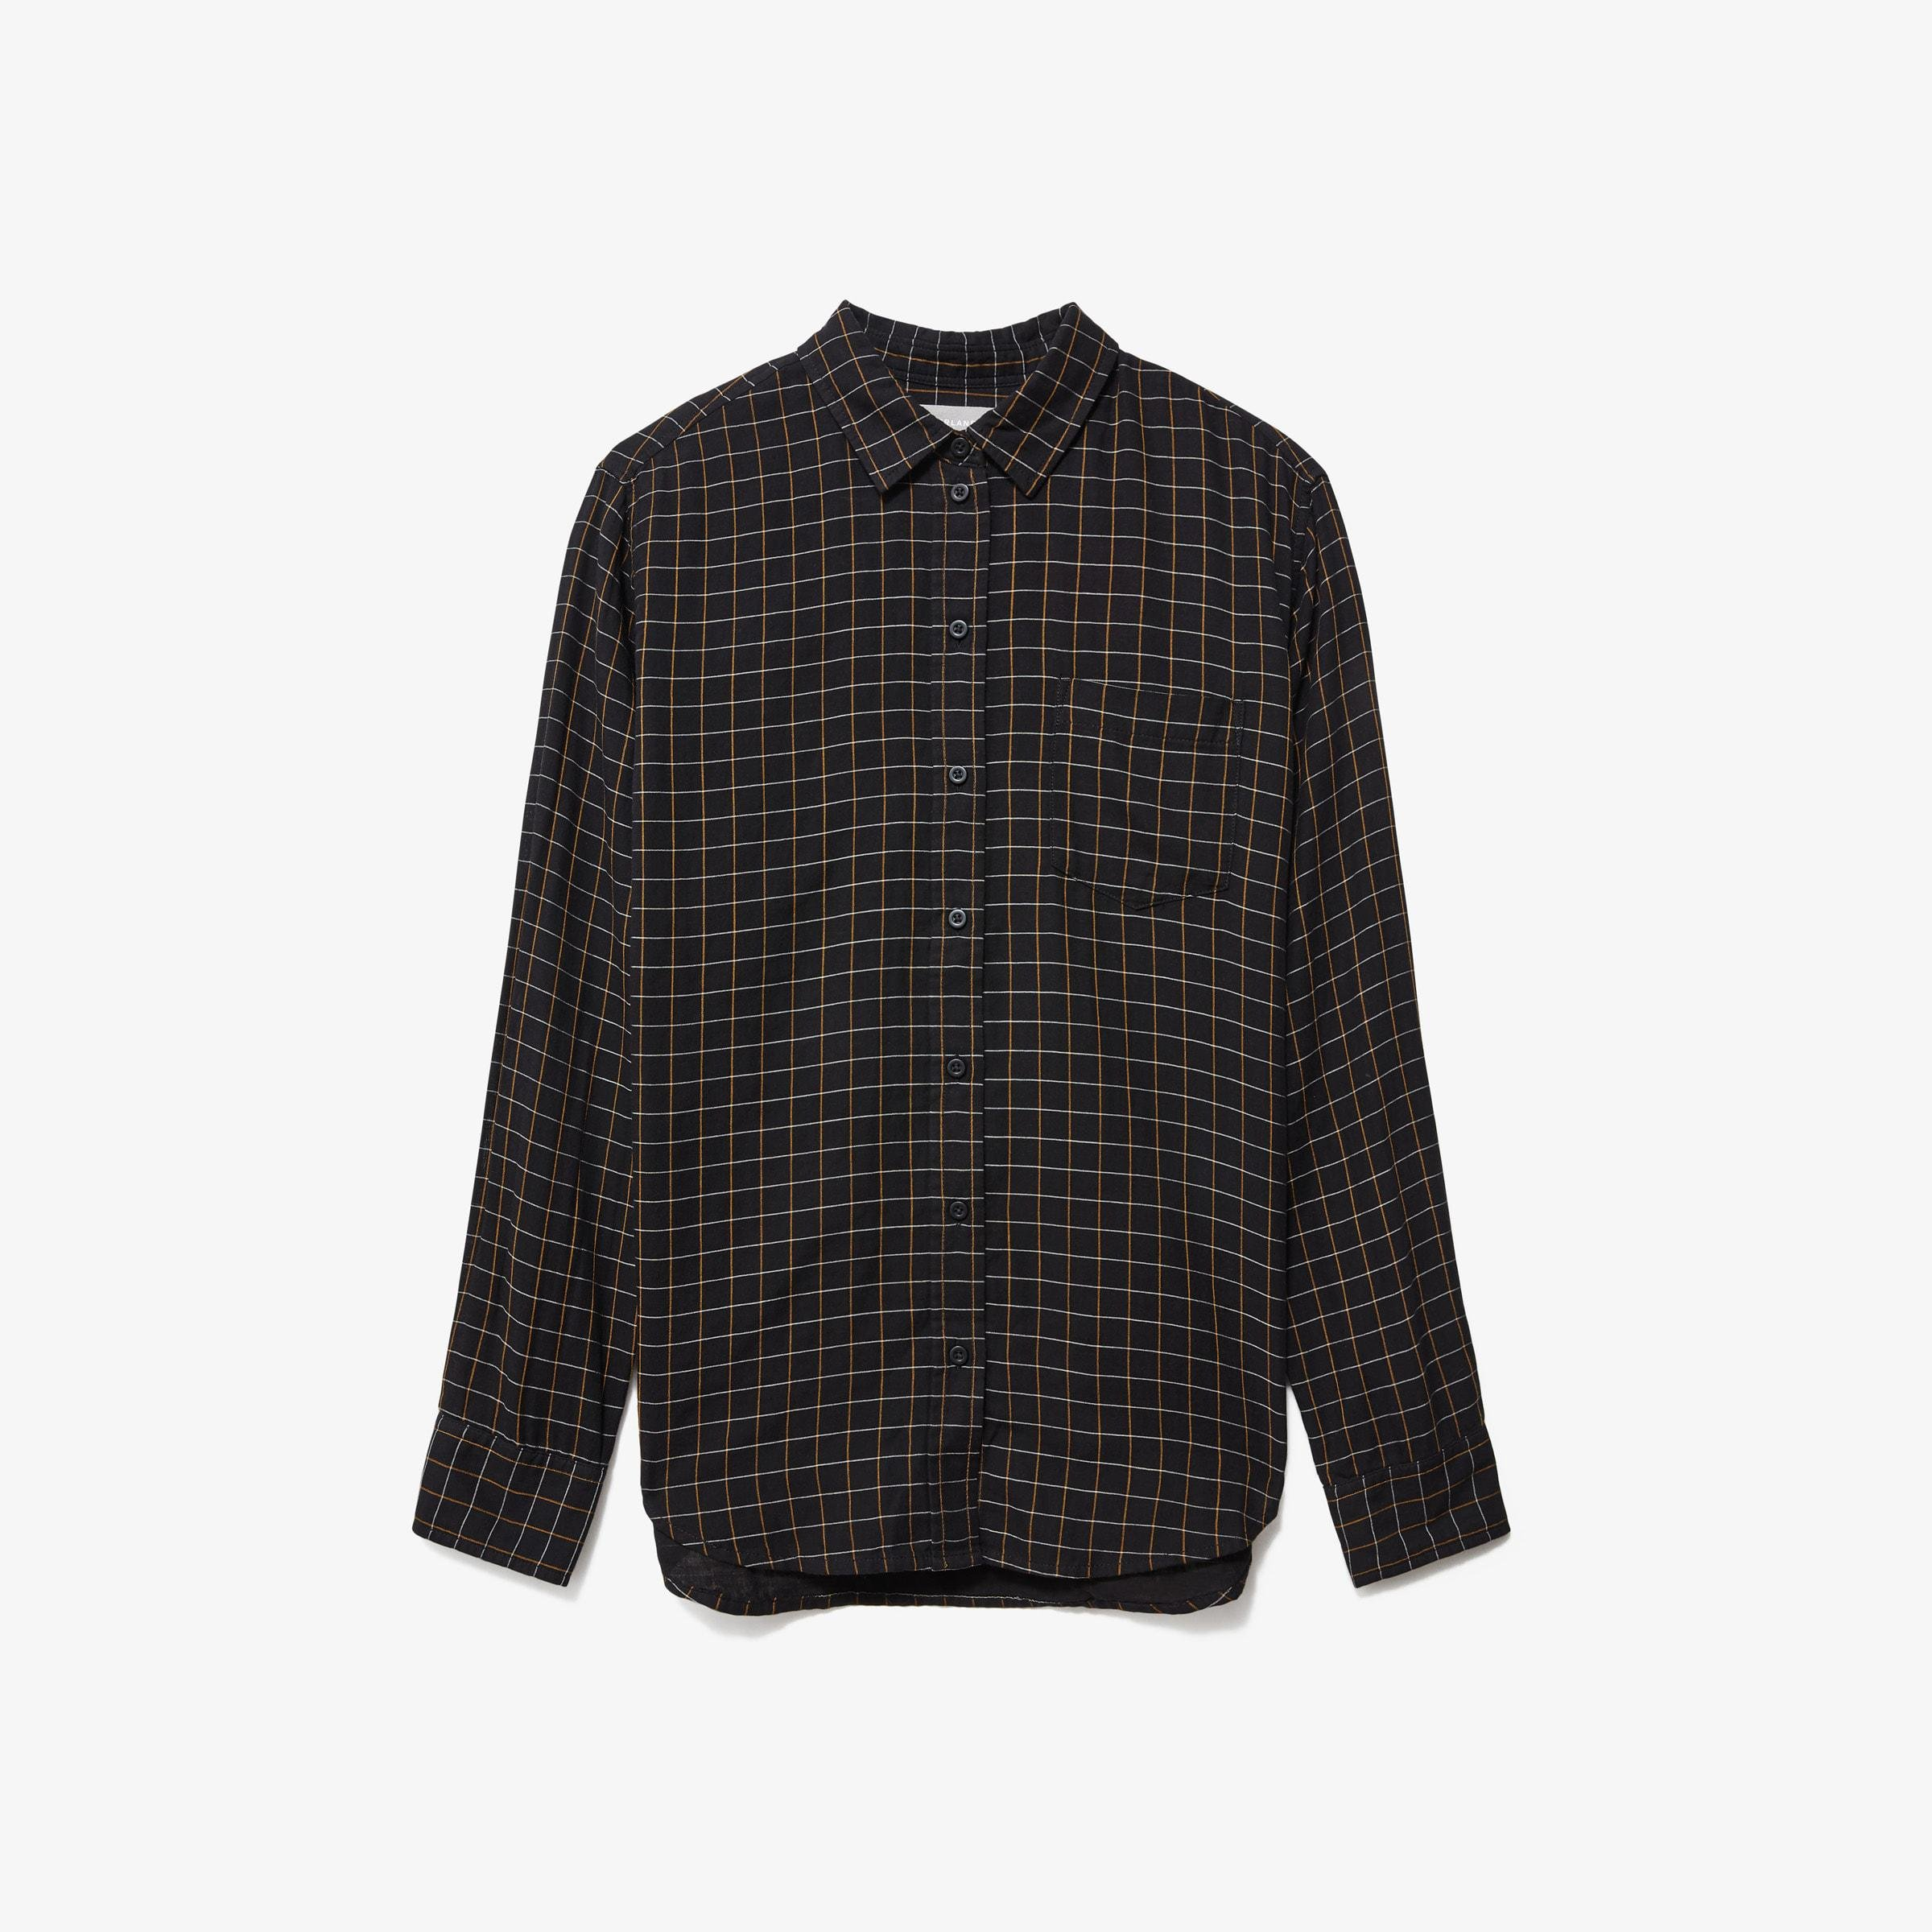 The Double-Gauze Relaxed Shirt 4